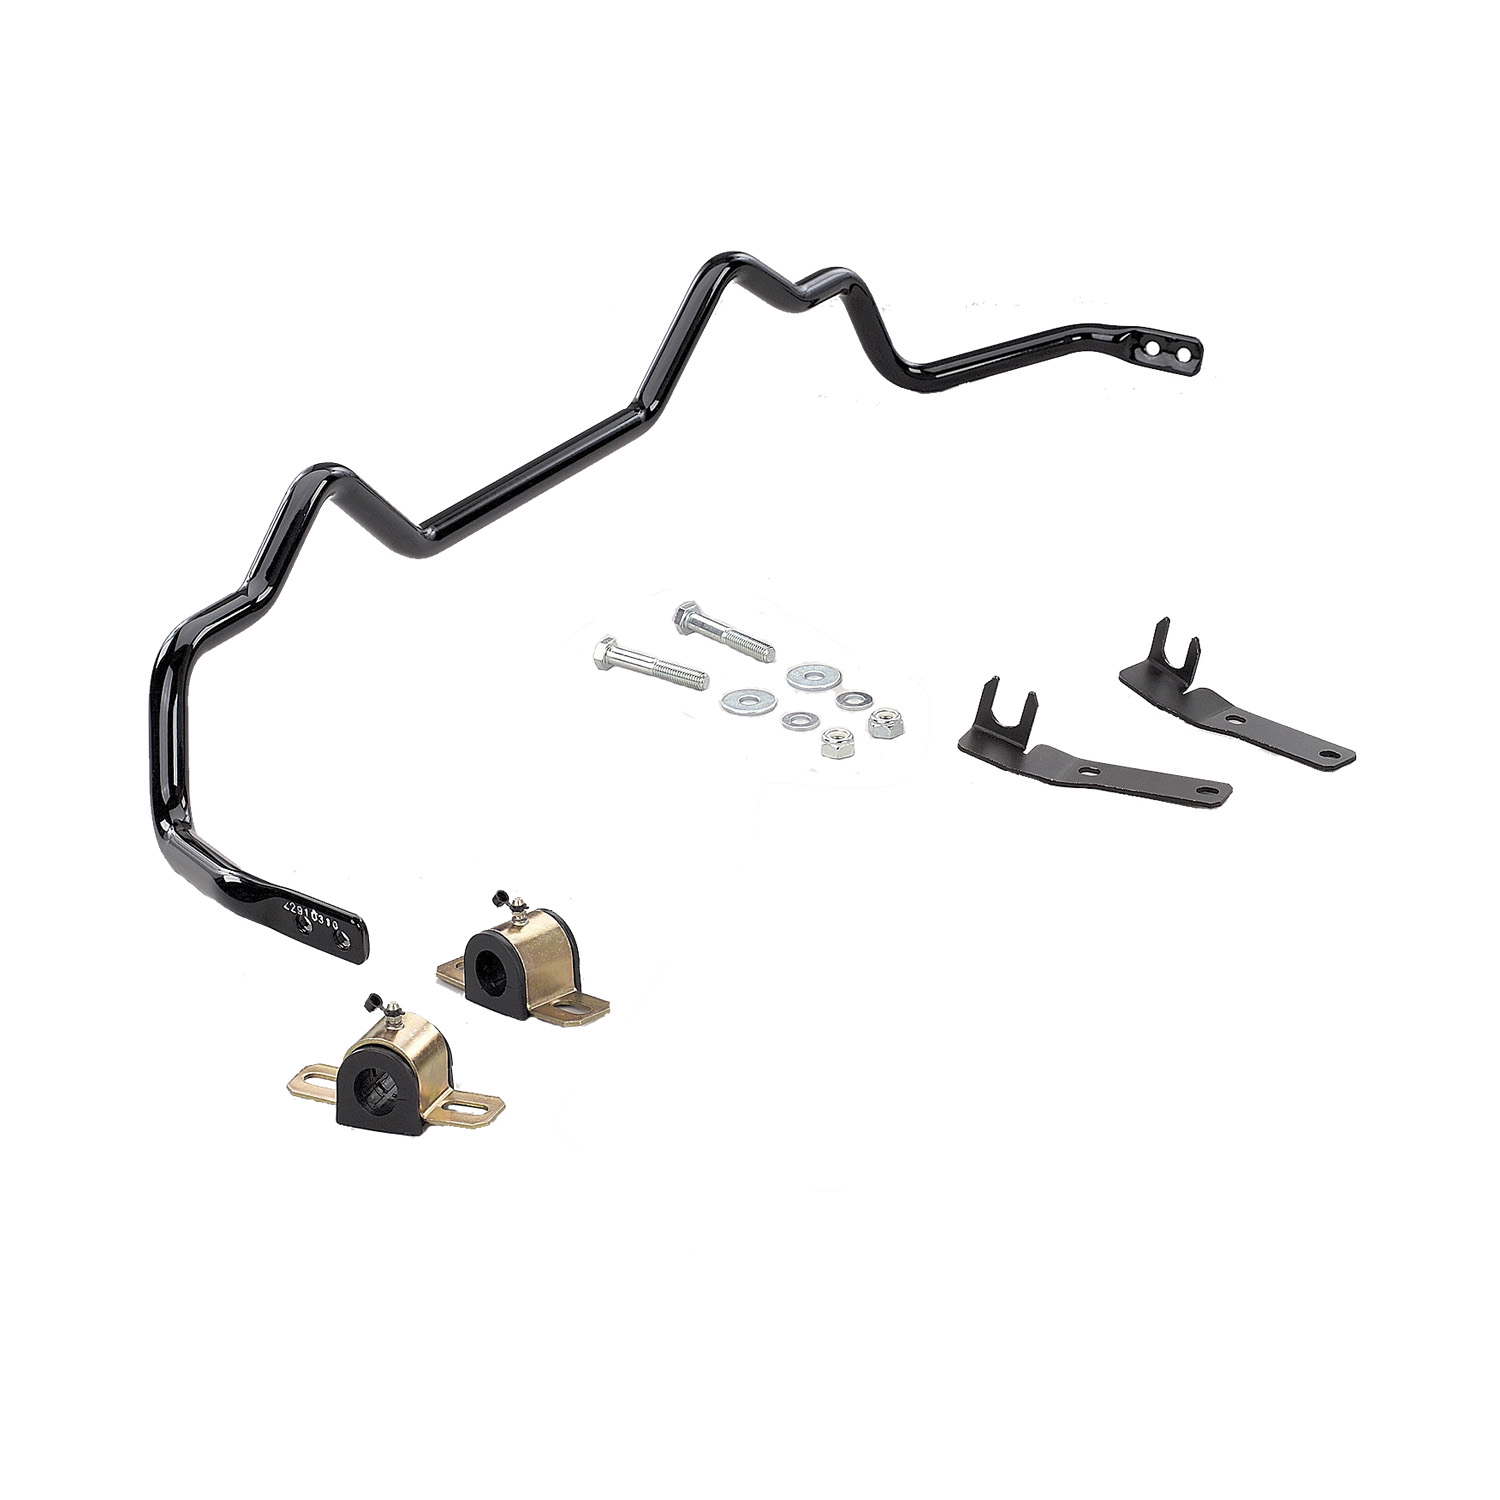 2003-2004 Audi RS6 Sport Rear Sway Bar from Hotchkis Sport Suspension